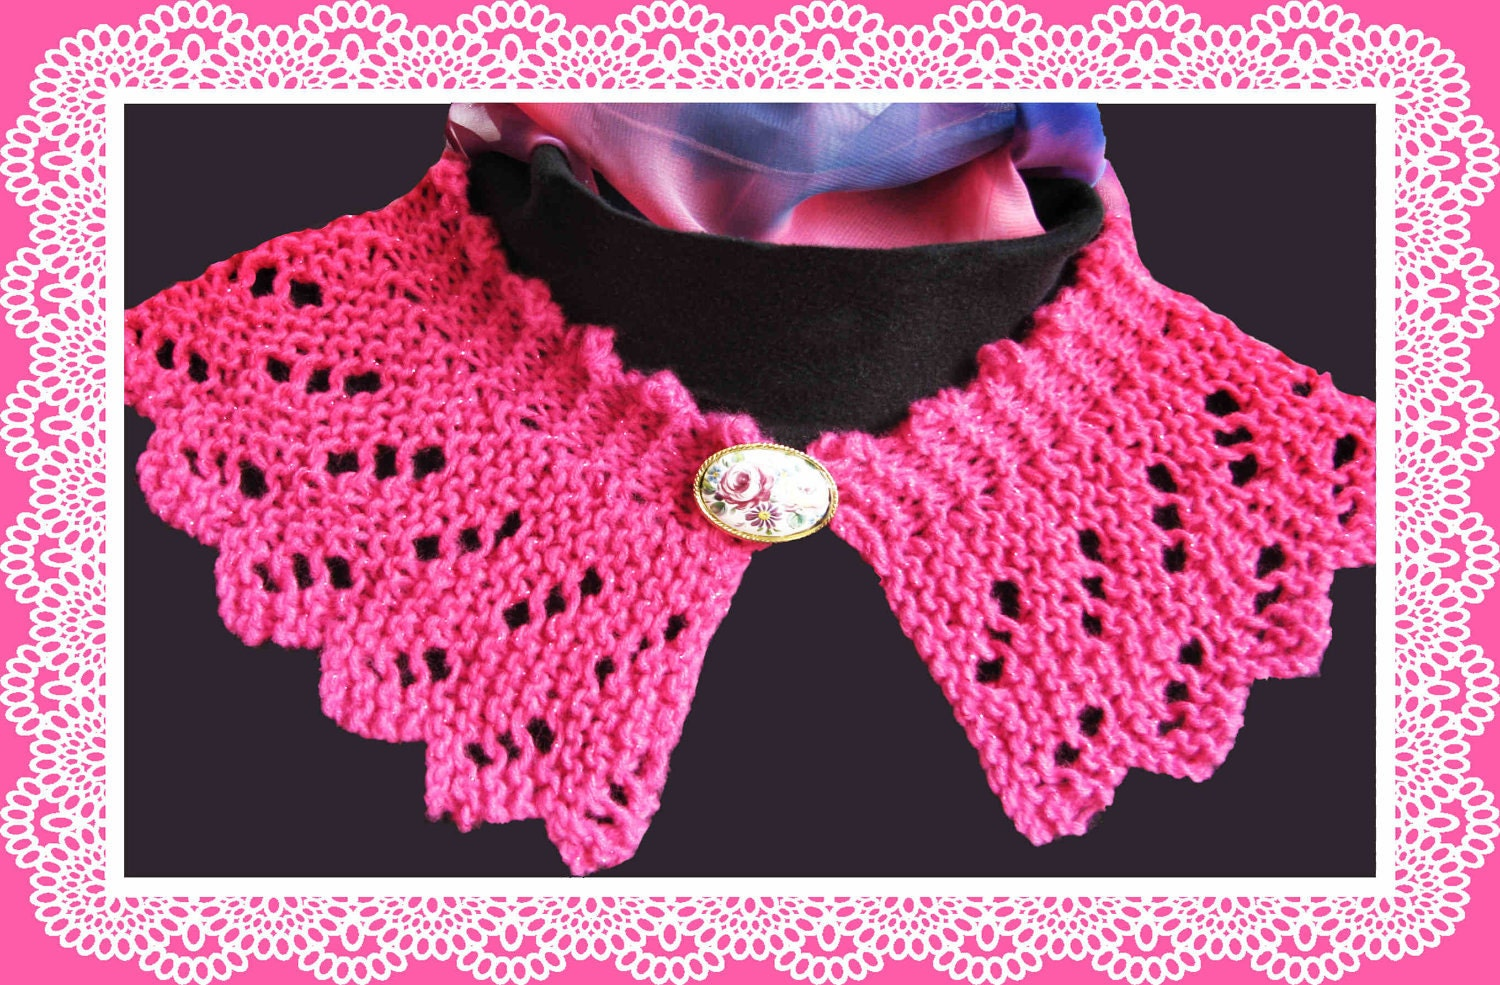 Knitting Pattern For Lace Collar : Lace Collar knitting pattern Raspberry Ripple design